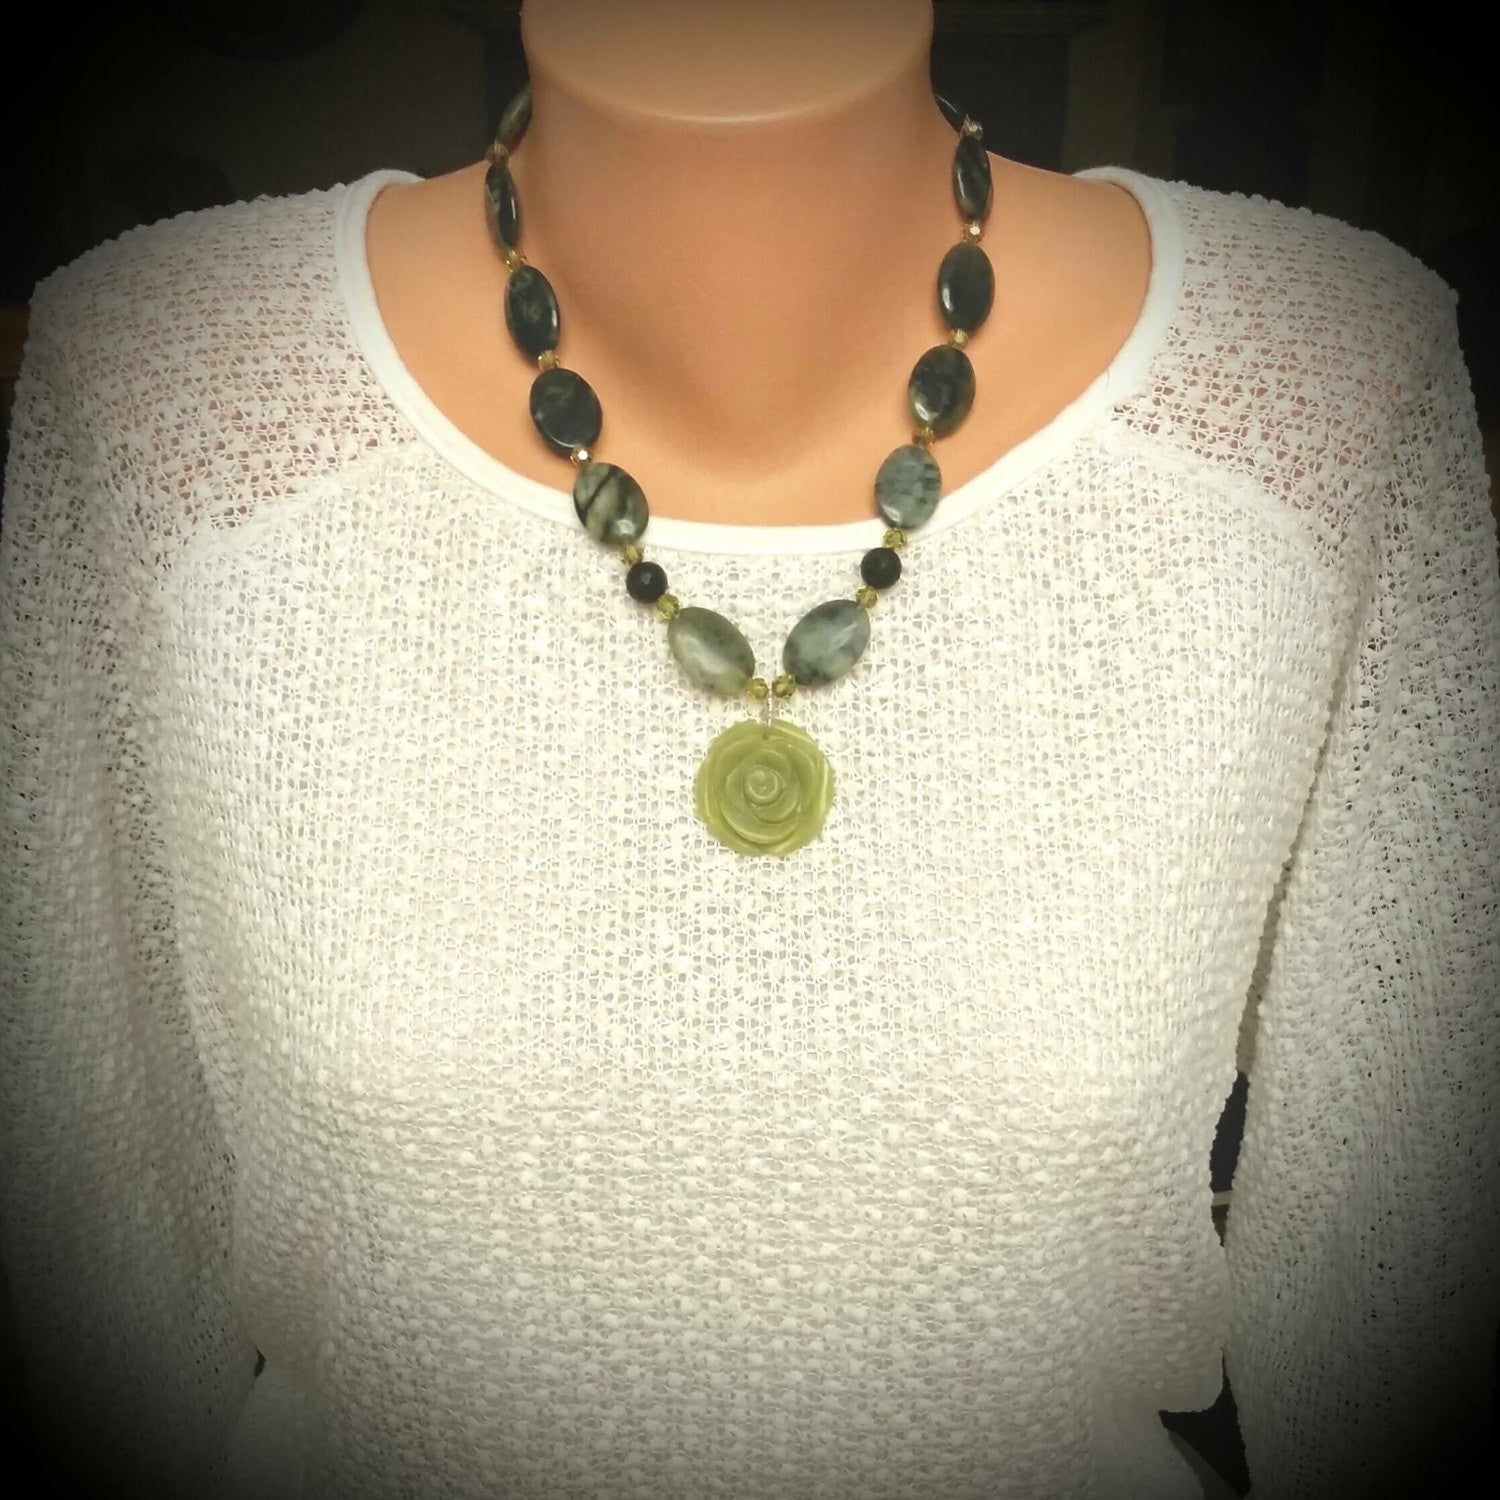 Essential oil diffuser necklace/earring set - New Jade, Sterling Silver